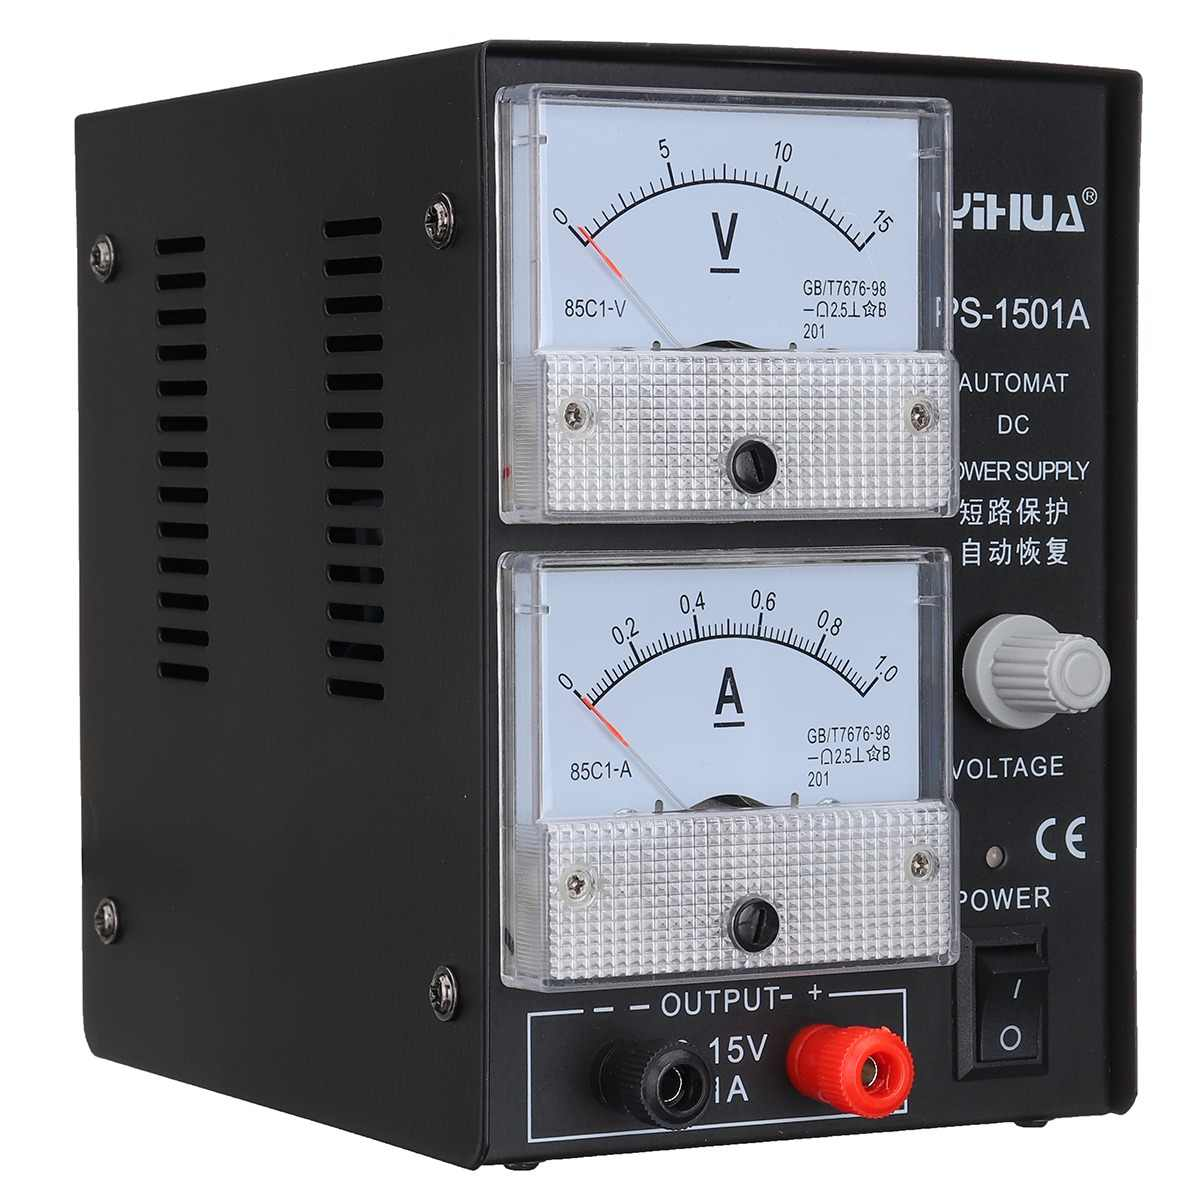 1Pcs 110V / 220V Adjustable DC power supply 15V/1A  Communication and maintenance dedicated Regulated power supply